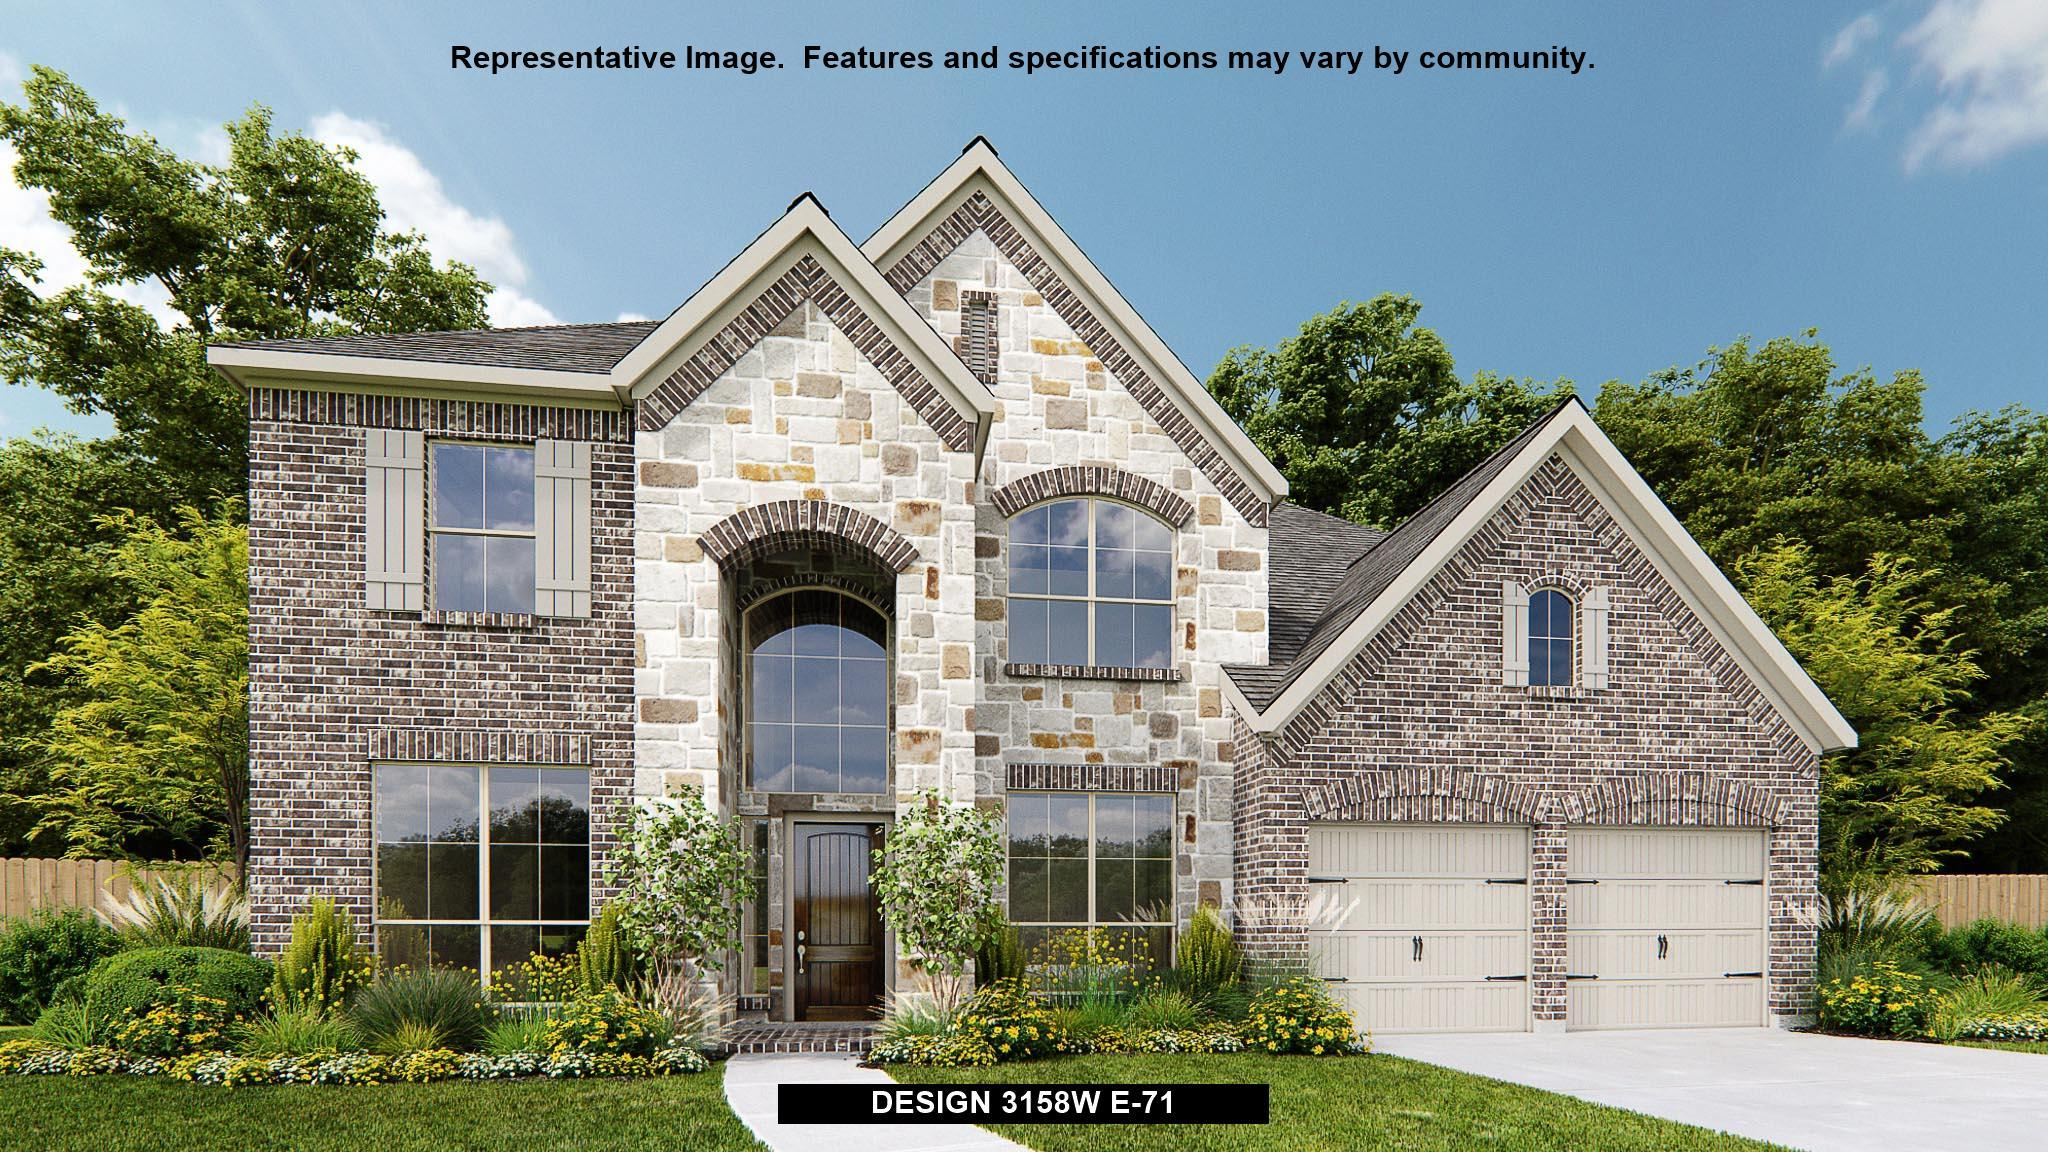 3158W - Firethorne: Firethorne 60': Katy, TX - Perry Homes